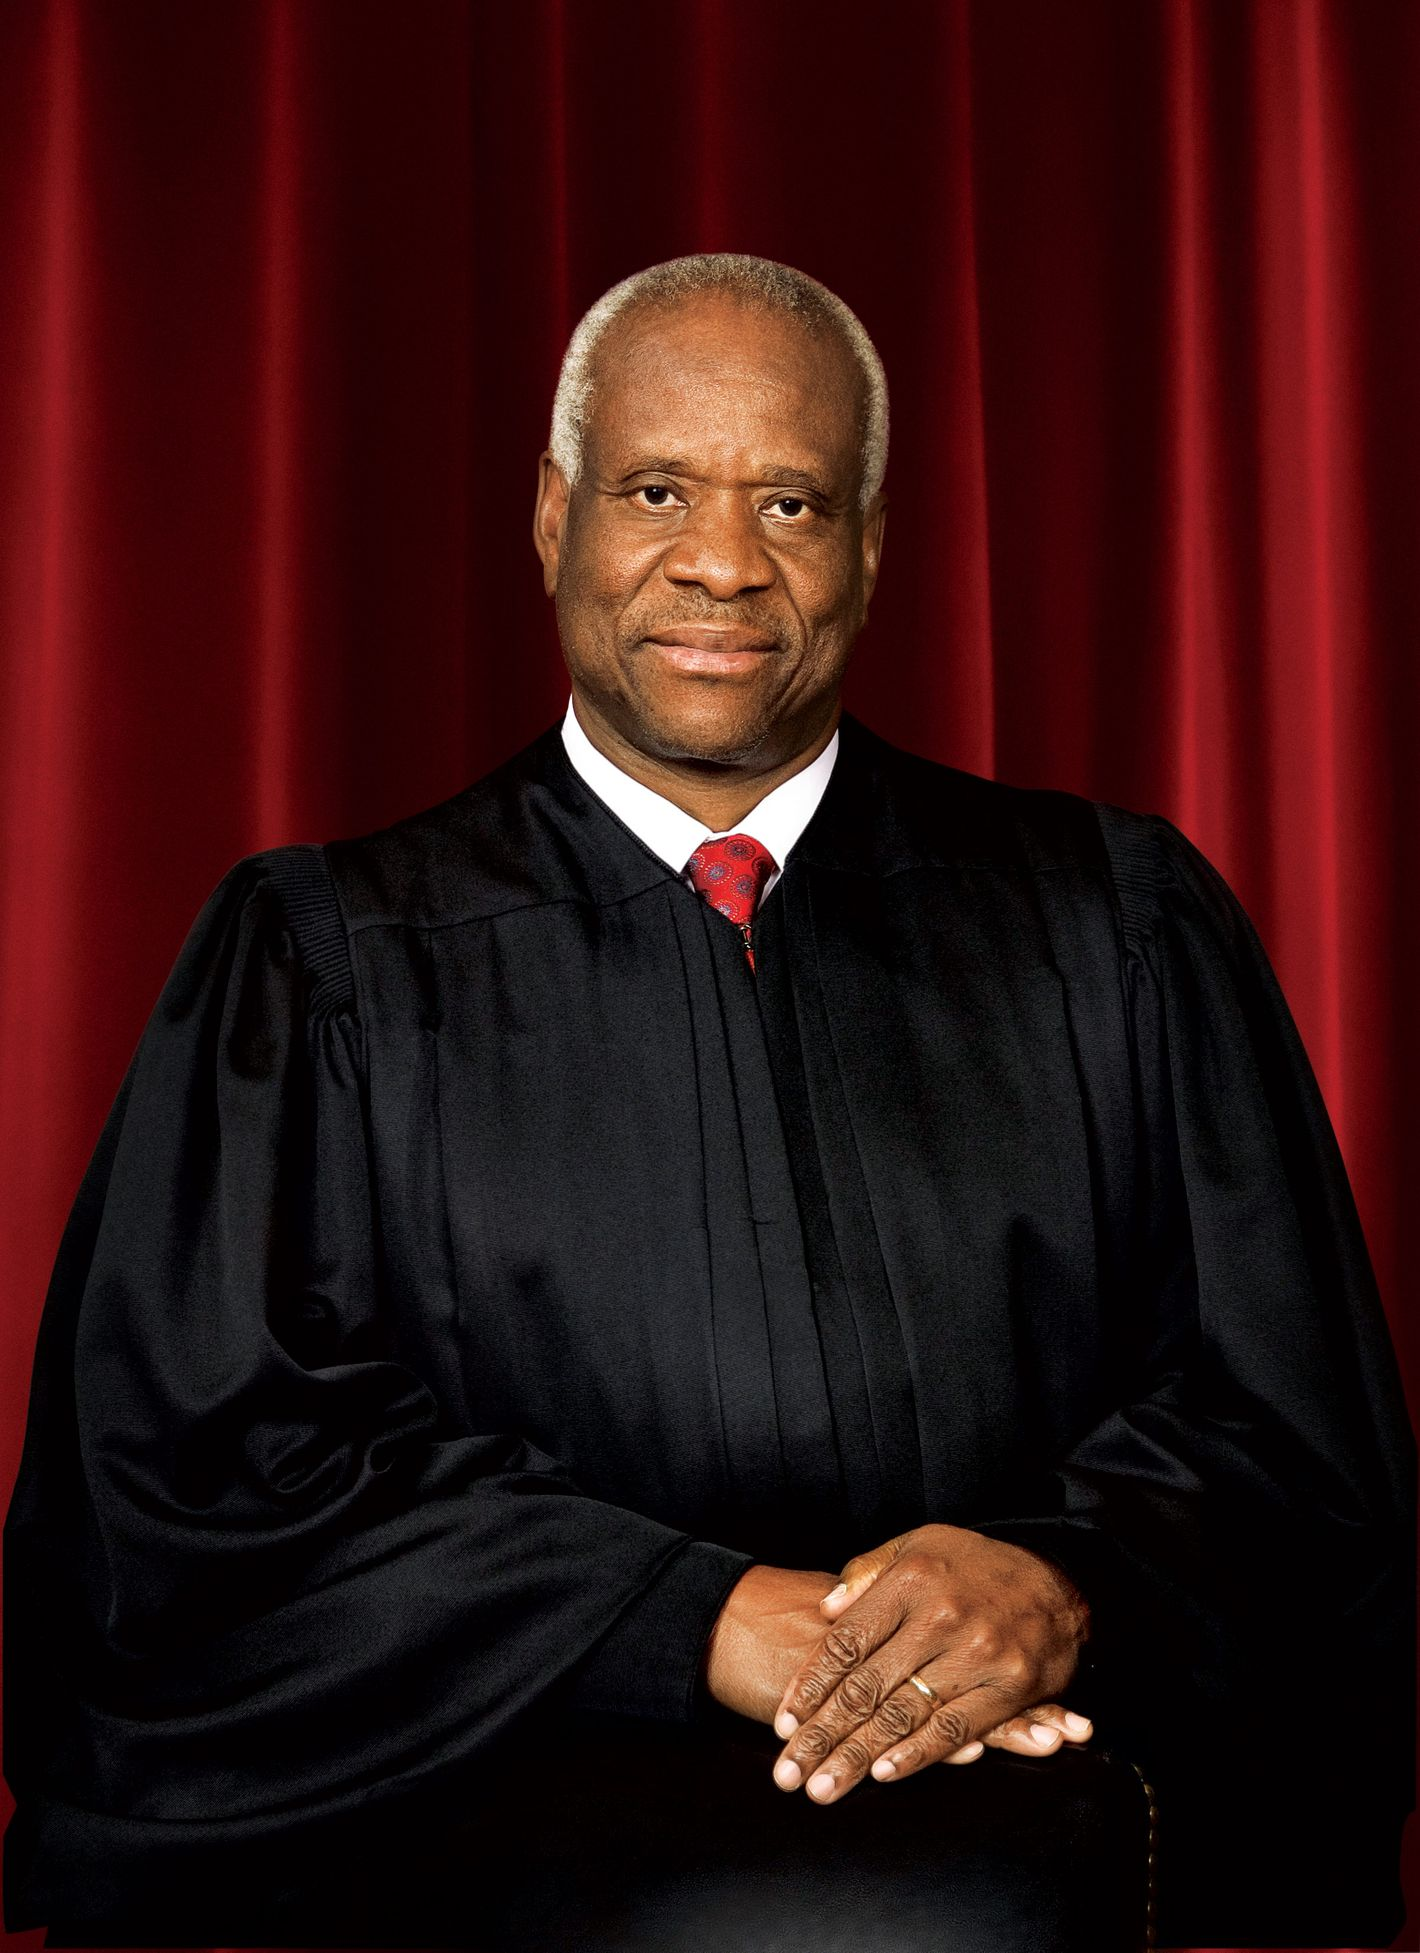 US Supreme Court Associate Justice Clarence Thomas